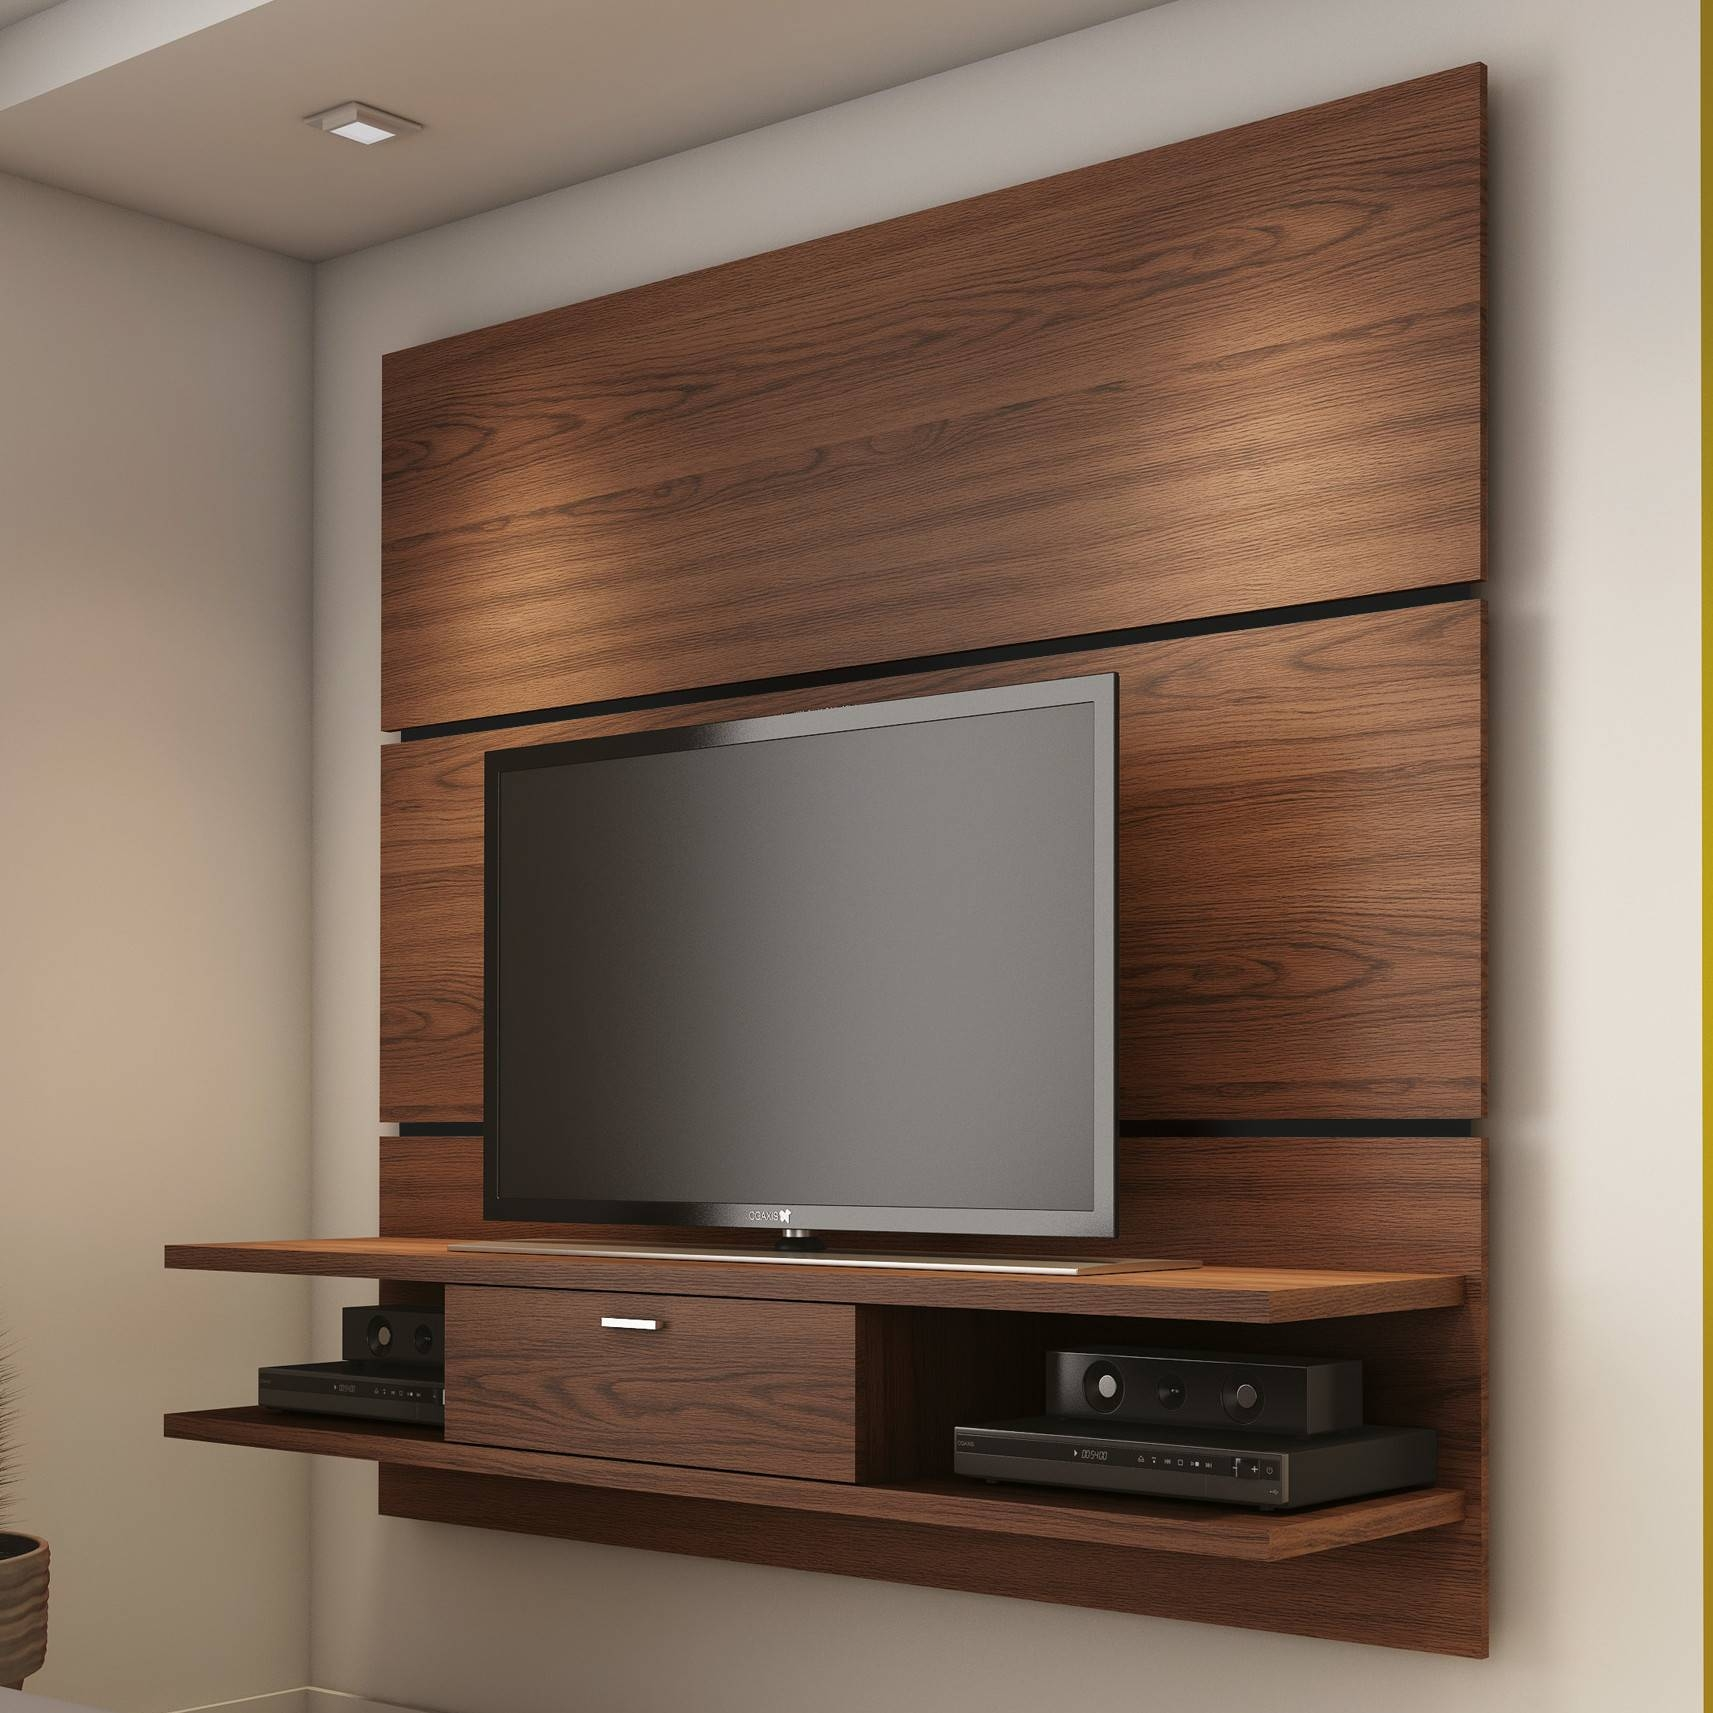 Bedroom Wall Tv Stand Cabinet With Recessed Lighting Idea For ~ Arafen within Modern Wall Mount Tv Stands (Image 3 of 15)